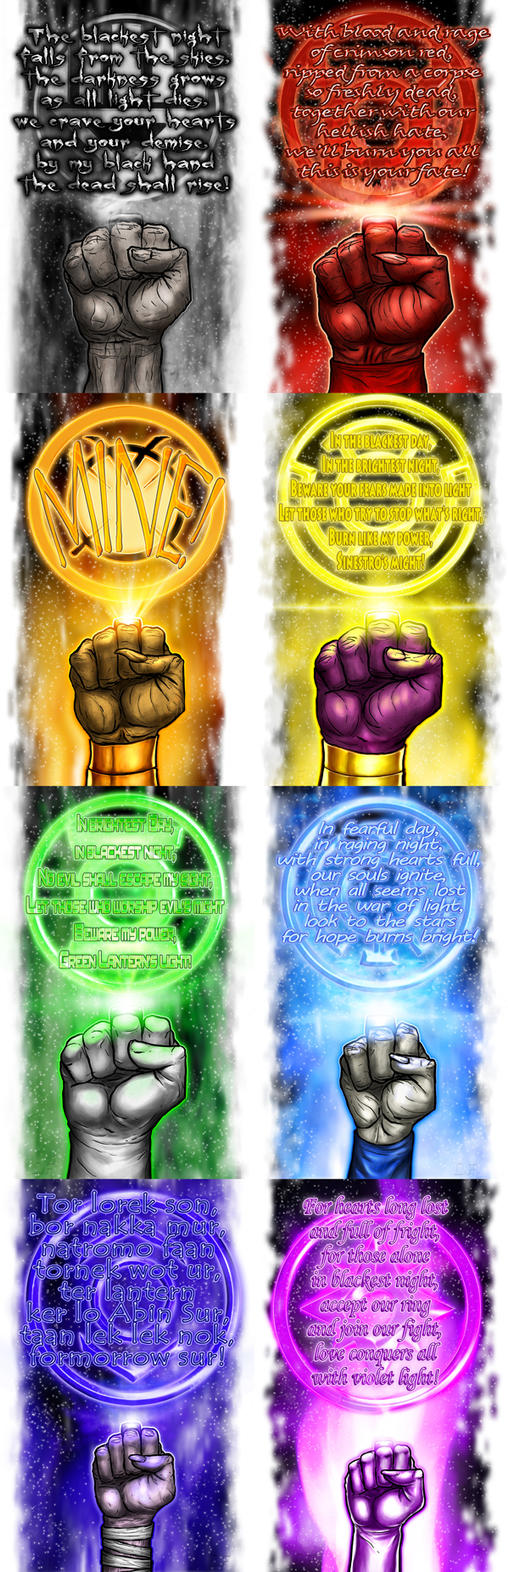 Lantern Corps Oaths by halwilliams on DeviantArt